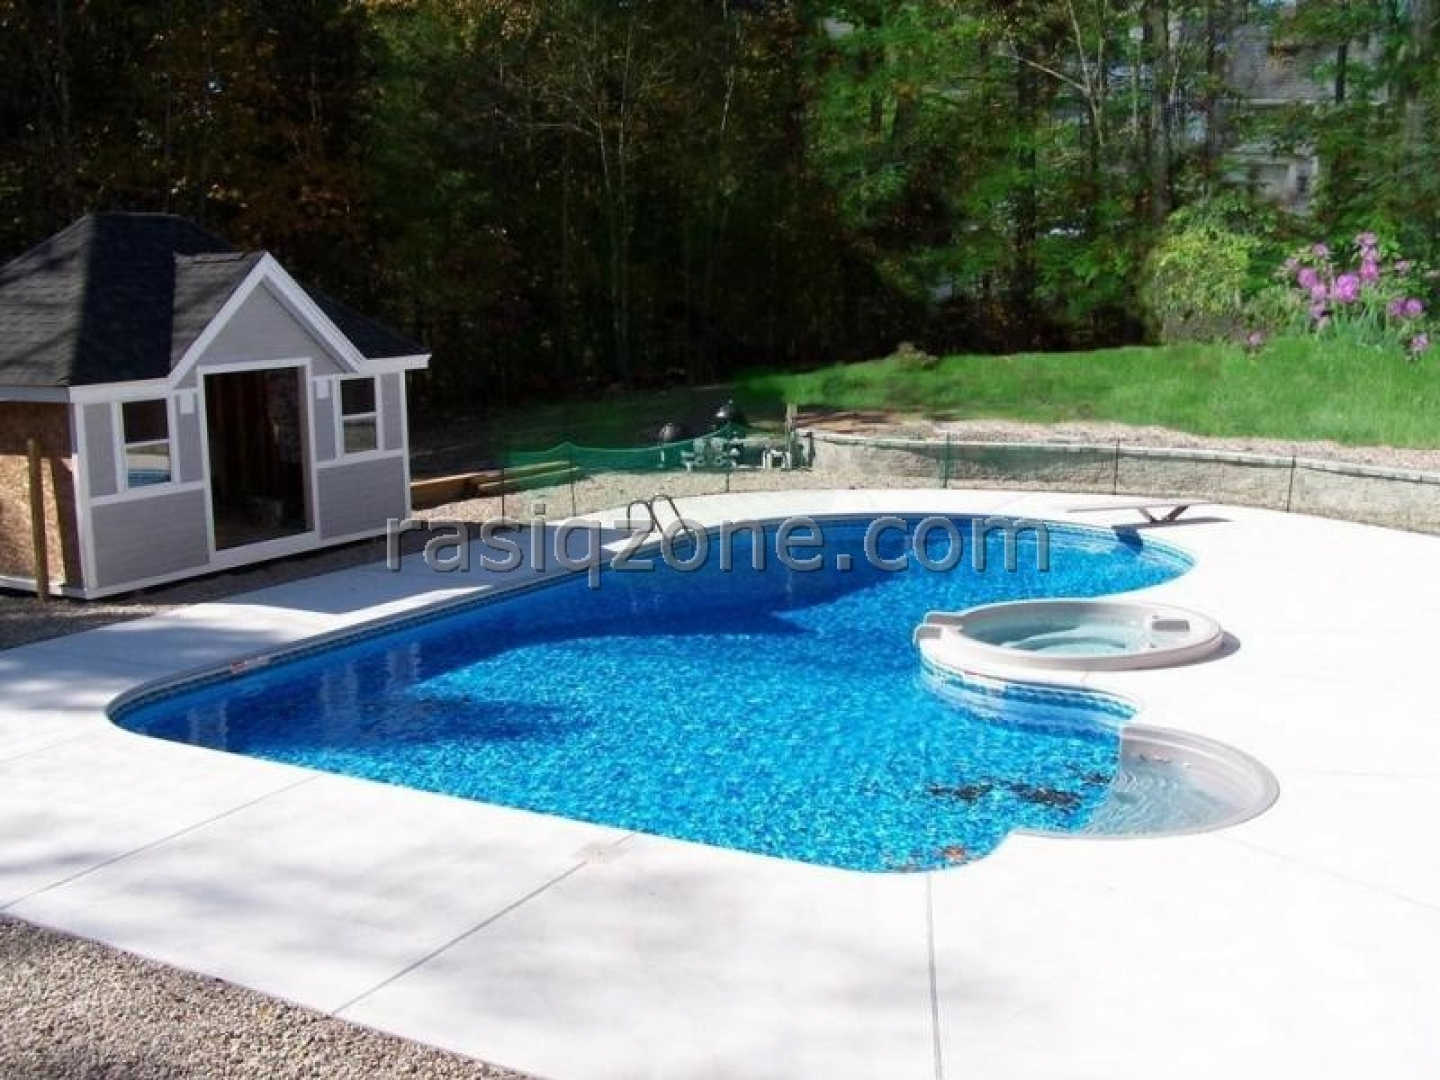 Cool Backyard Pool Designs for Your Outdoor Space: Swimming Pool Cabana Ideas | Backyard Pool Designs | Swimming Pool Costs